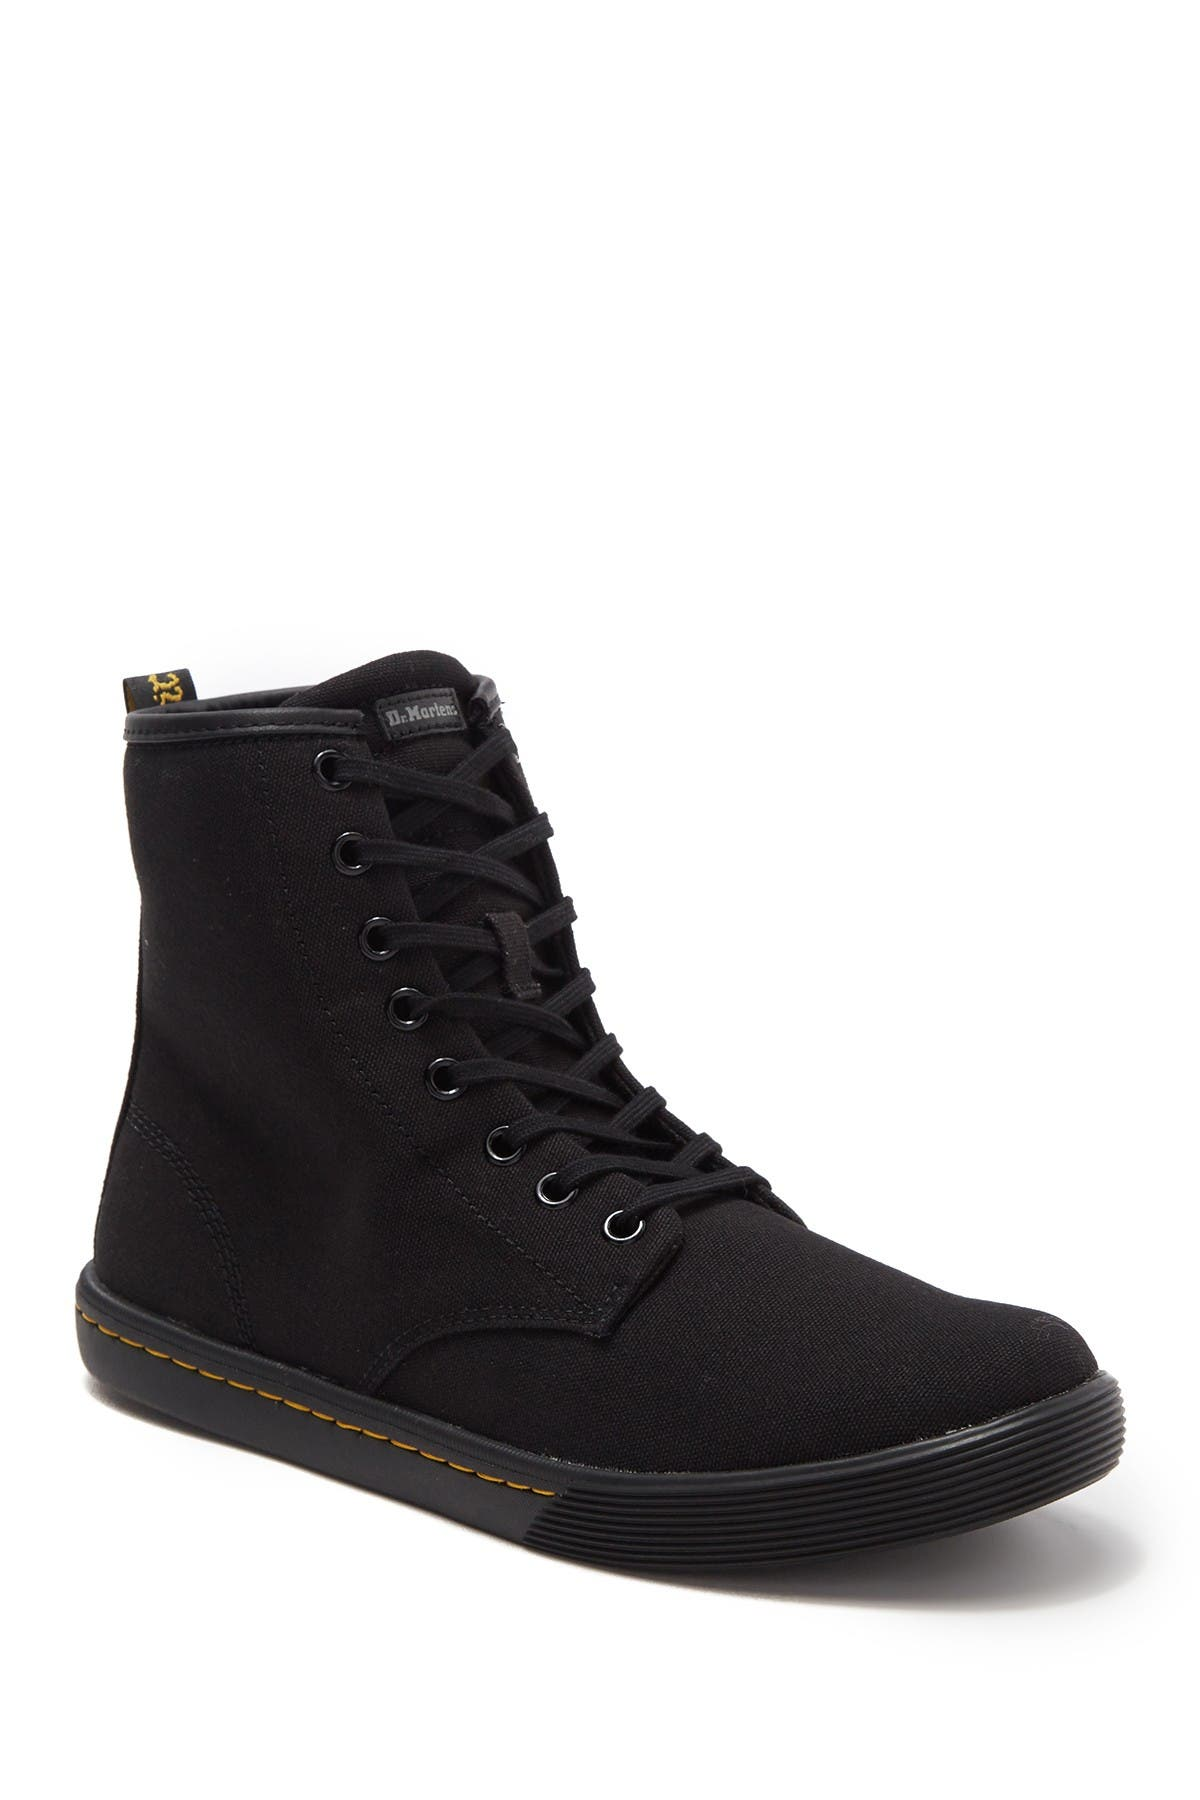 dr martens high top trainers